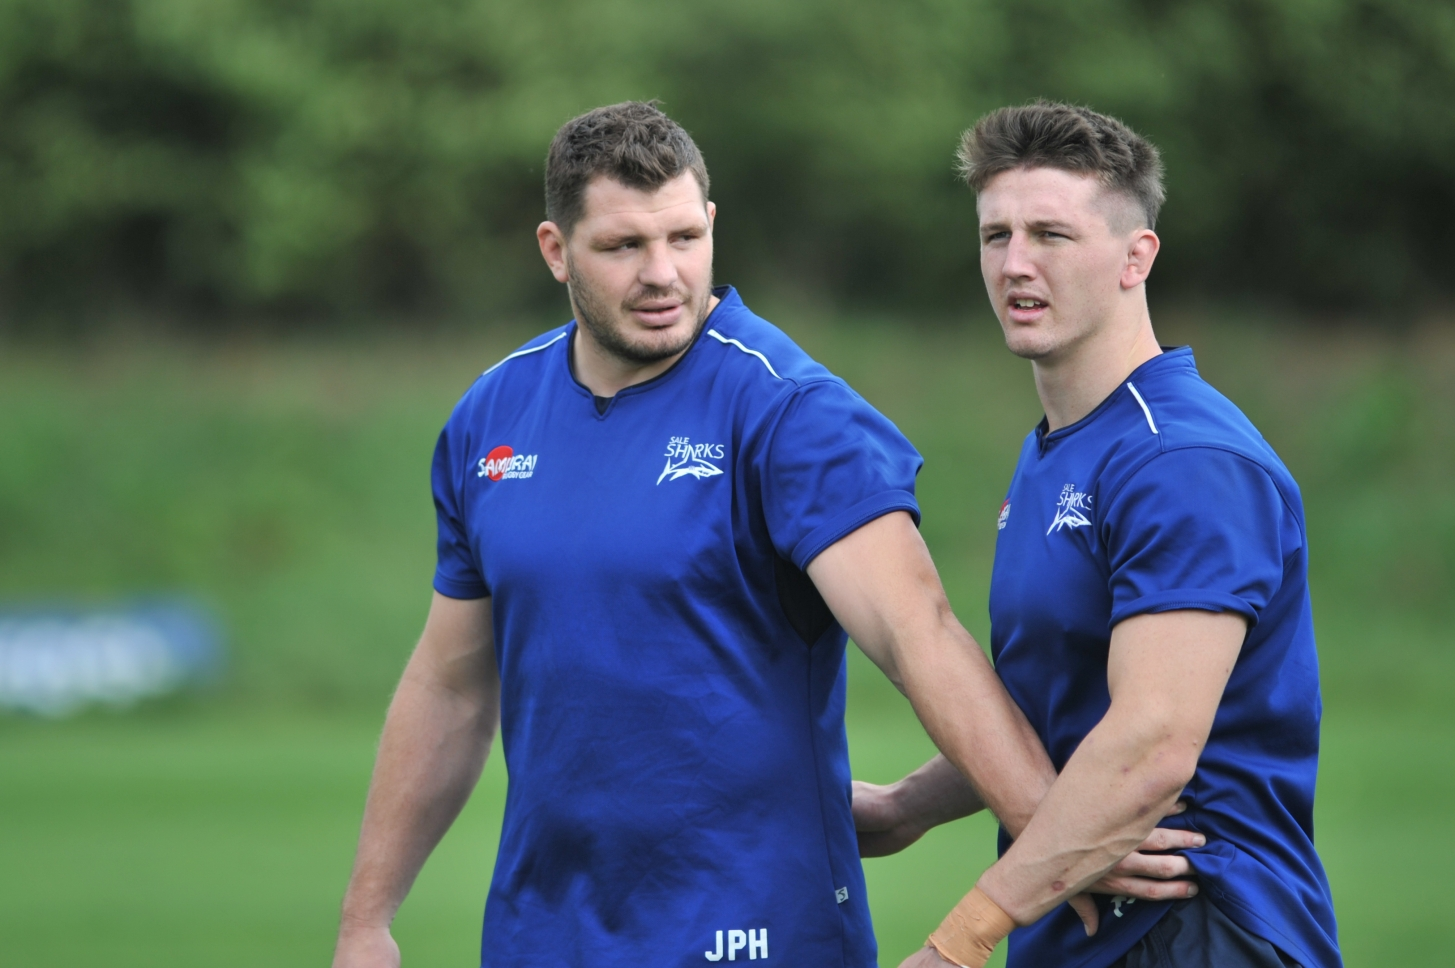 JAMES PHILLIPS AGREES CONTRACT EXTENSION WITH SALE SHARKS